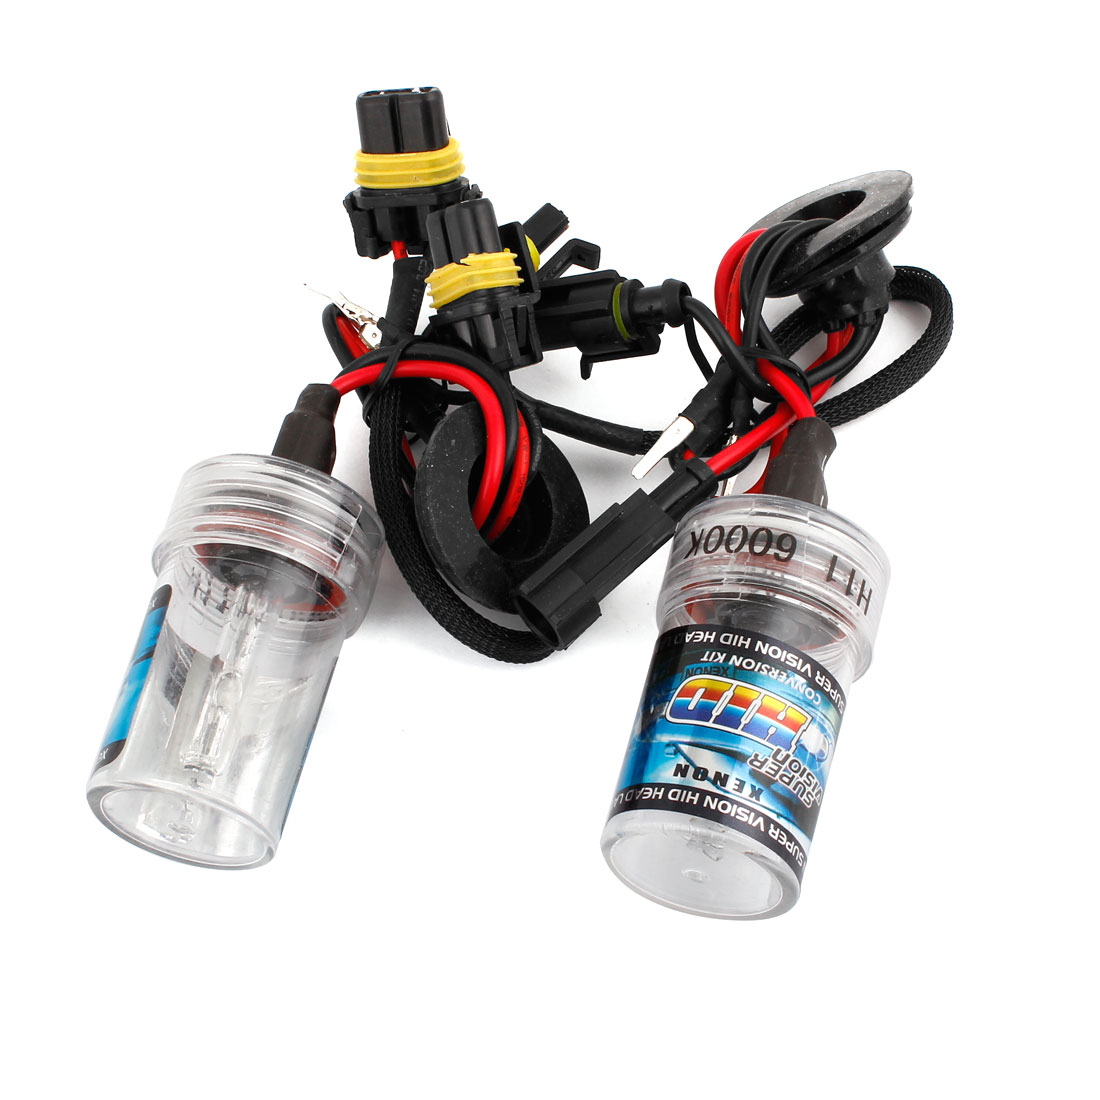 2pcs 6000K White H11 HID Xenon Bulb Lamp Light Headlamp Kit for Auto Car